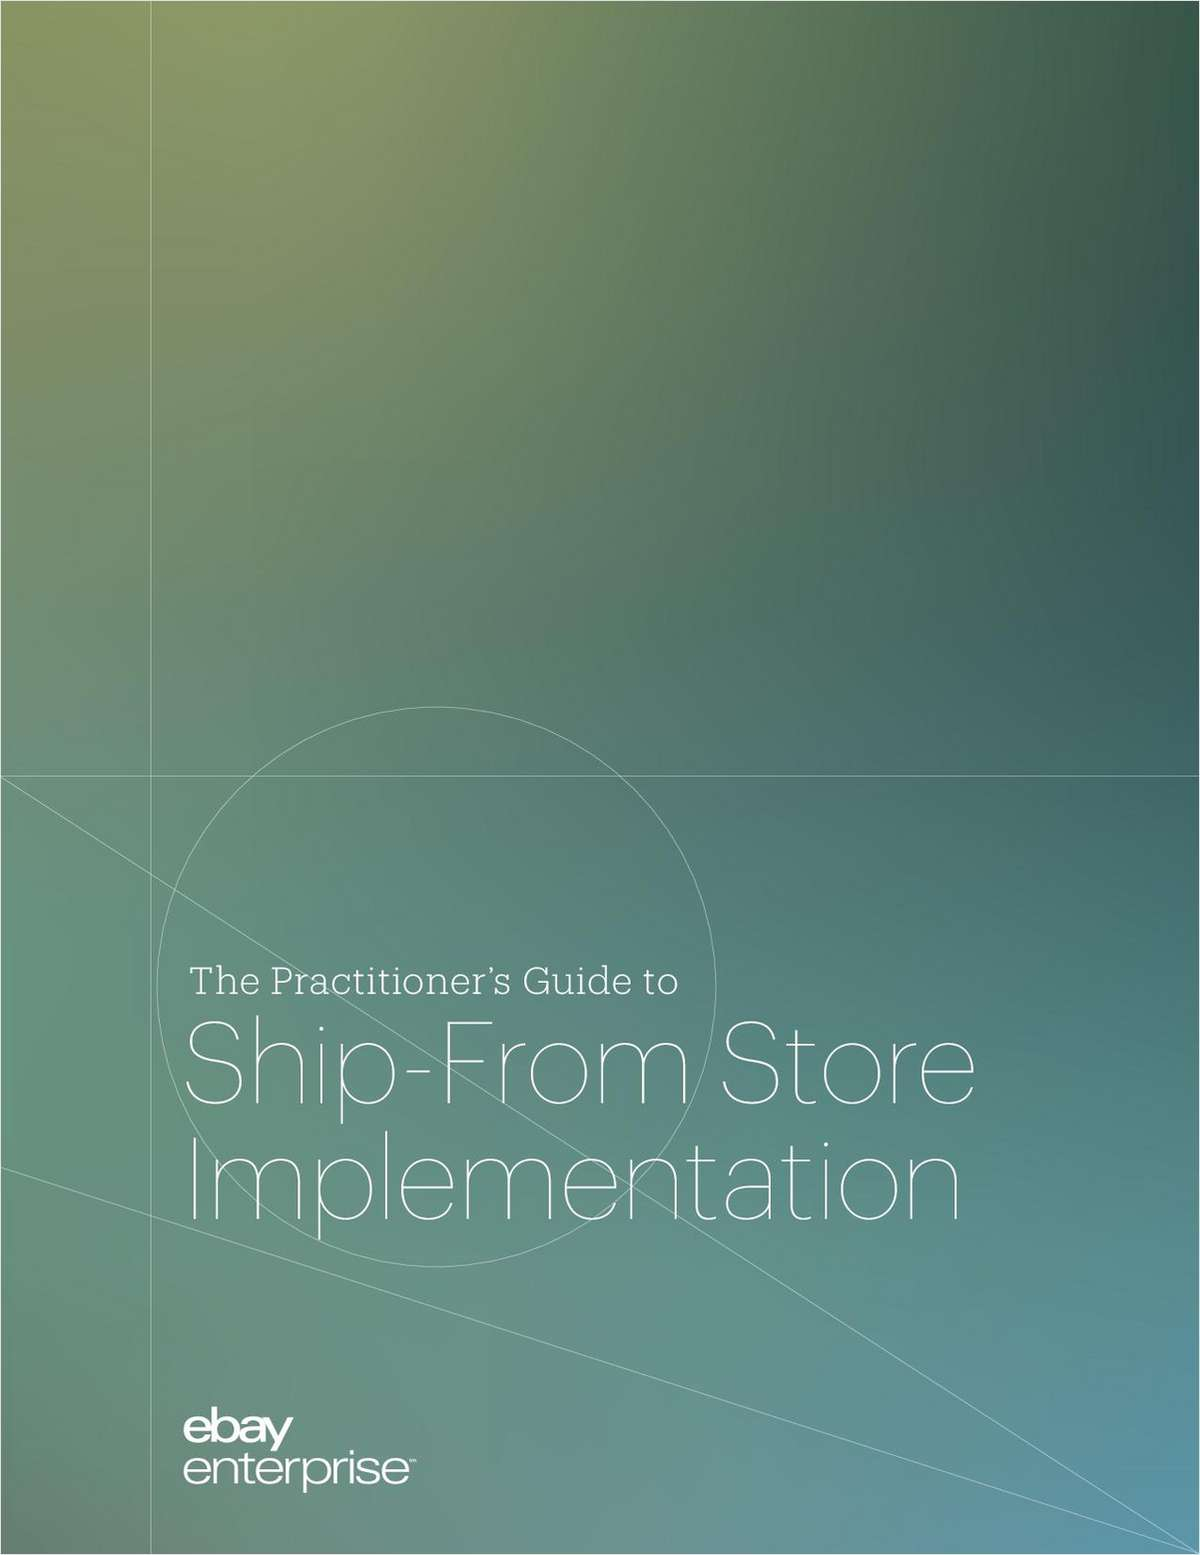 The Practitioner's Guide to Ship-From Store Implementation